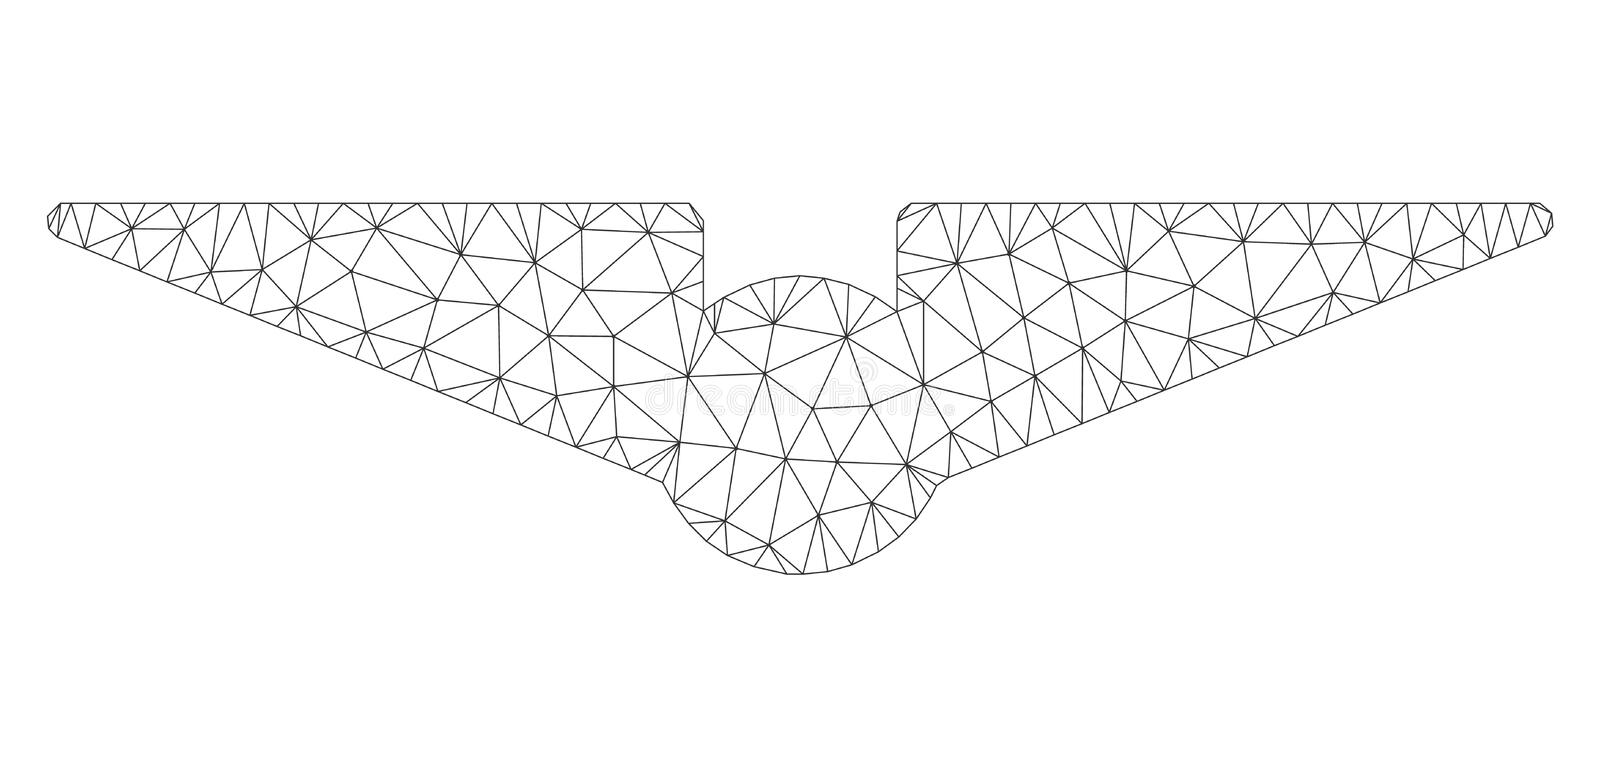 Aviation Polygonal Frame Vector Mesh Illustration. Mesh aviation polygonal 2d illustration. Abstract mesh lines and dots form triangular aviation. Wire frame 2D stock illustration